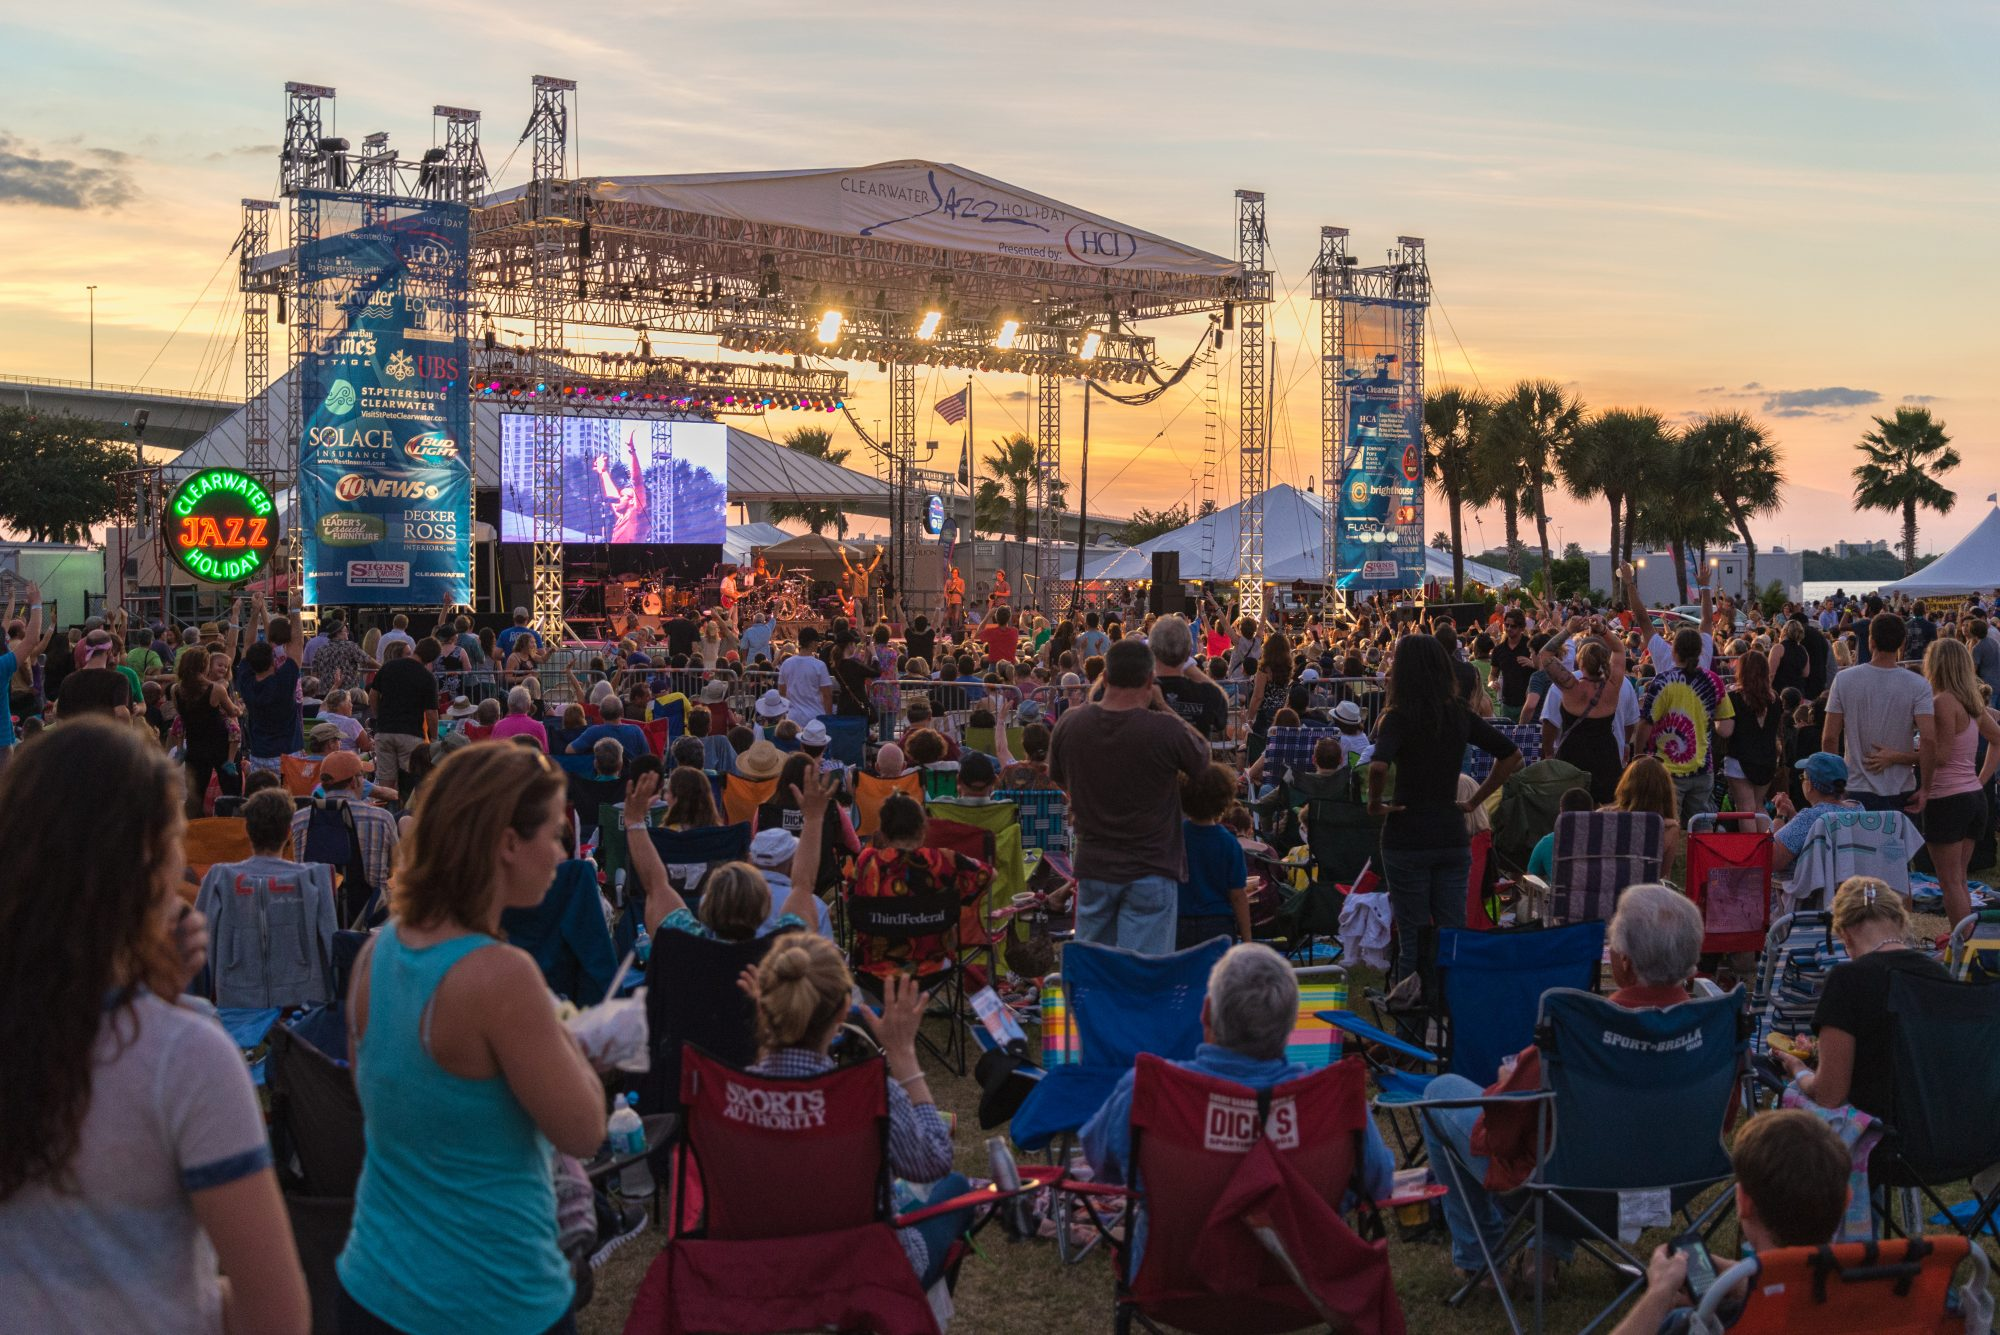 Clearwater: Clearwater Jazz Holiday